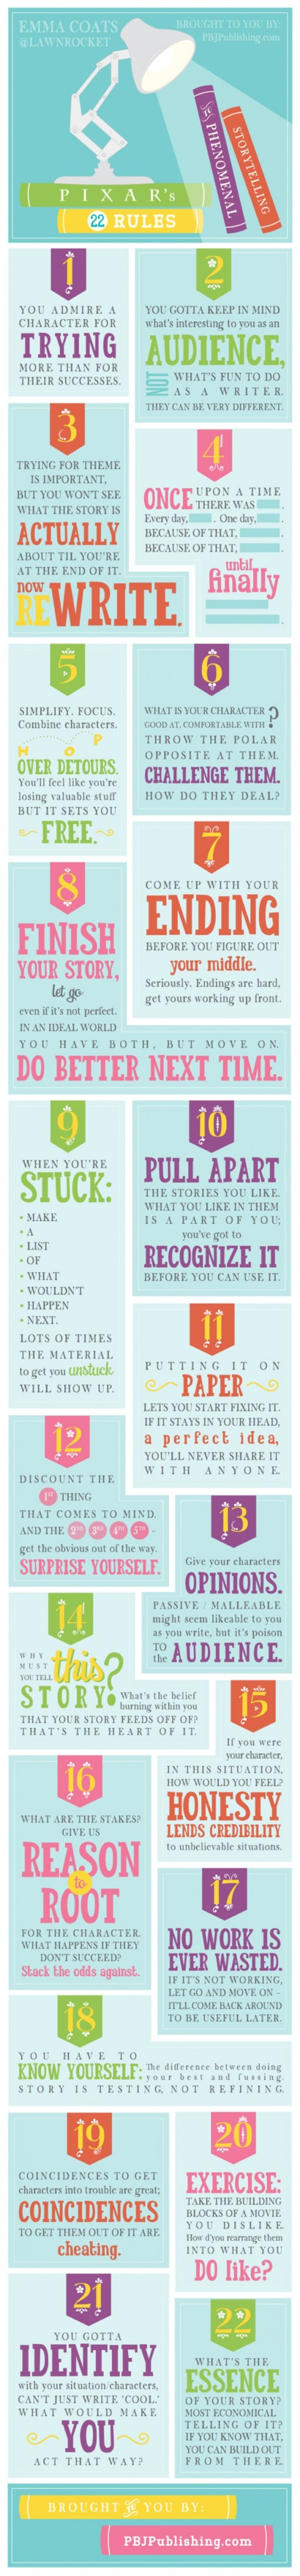 Pixar's 22 Rules to Phenomenal Storytelling [INFOGRAPHIC] | Machinimania | Scoop.it